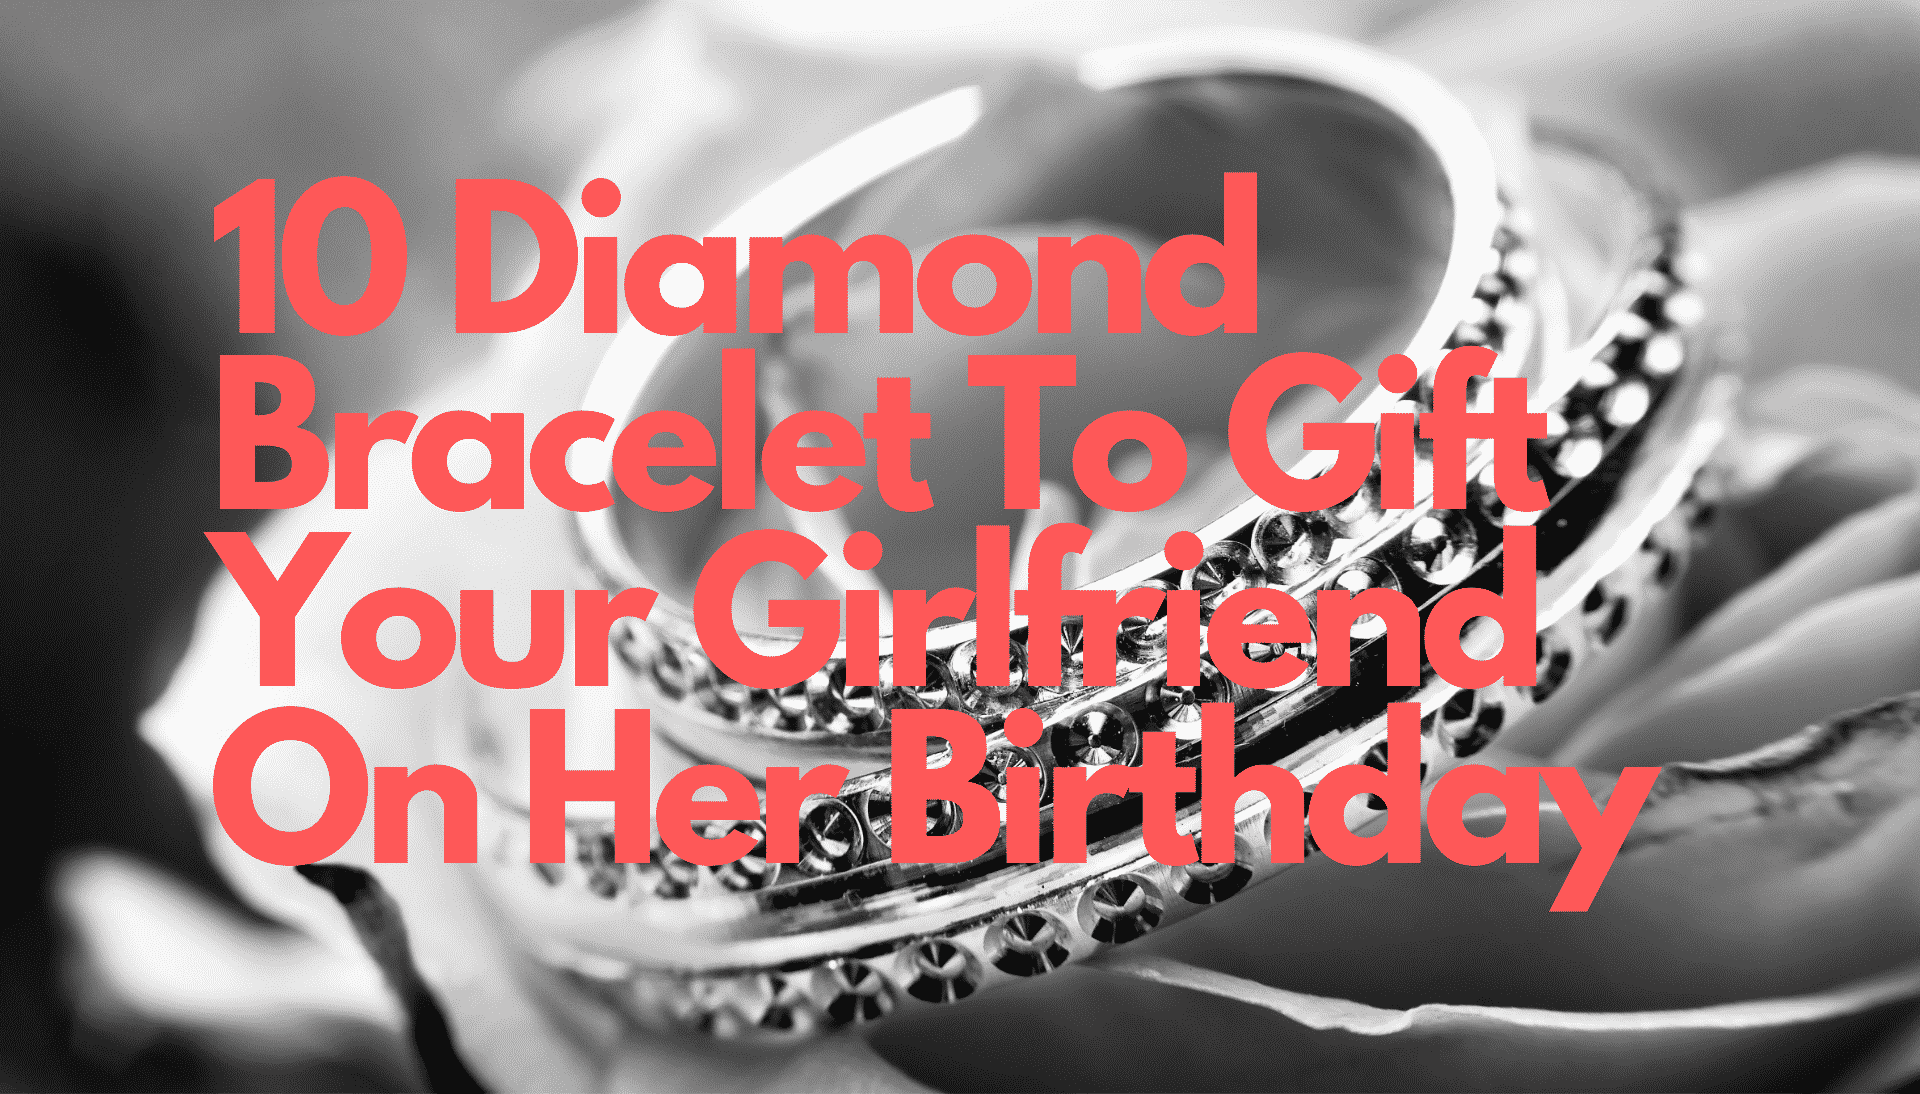 10 Diamond Bracelet To Gift Your Girlfriend On Her Birthday